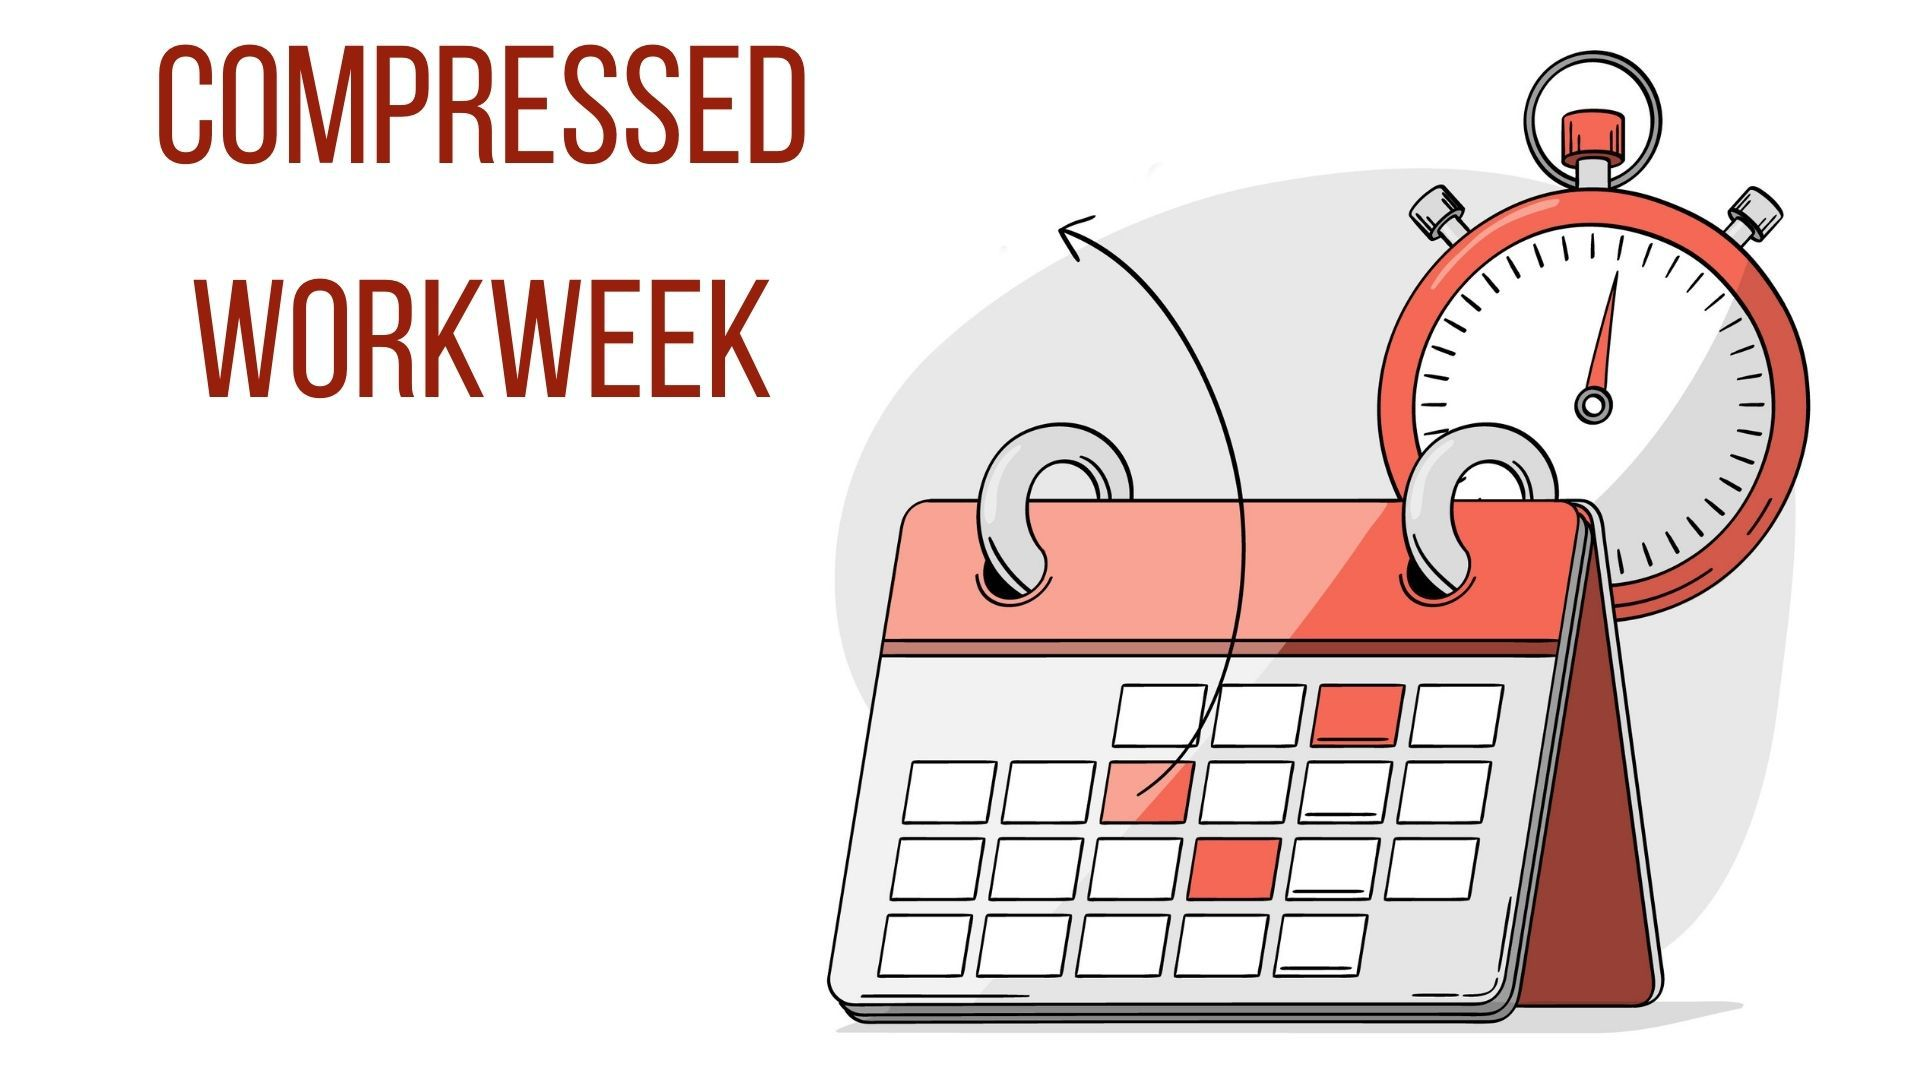 Compressed Workweek